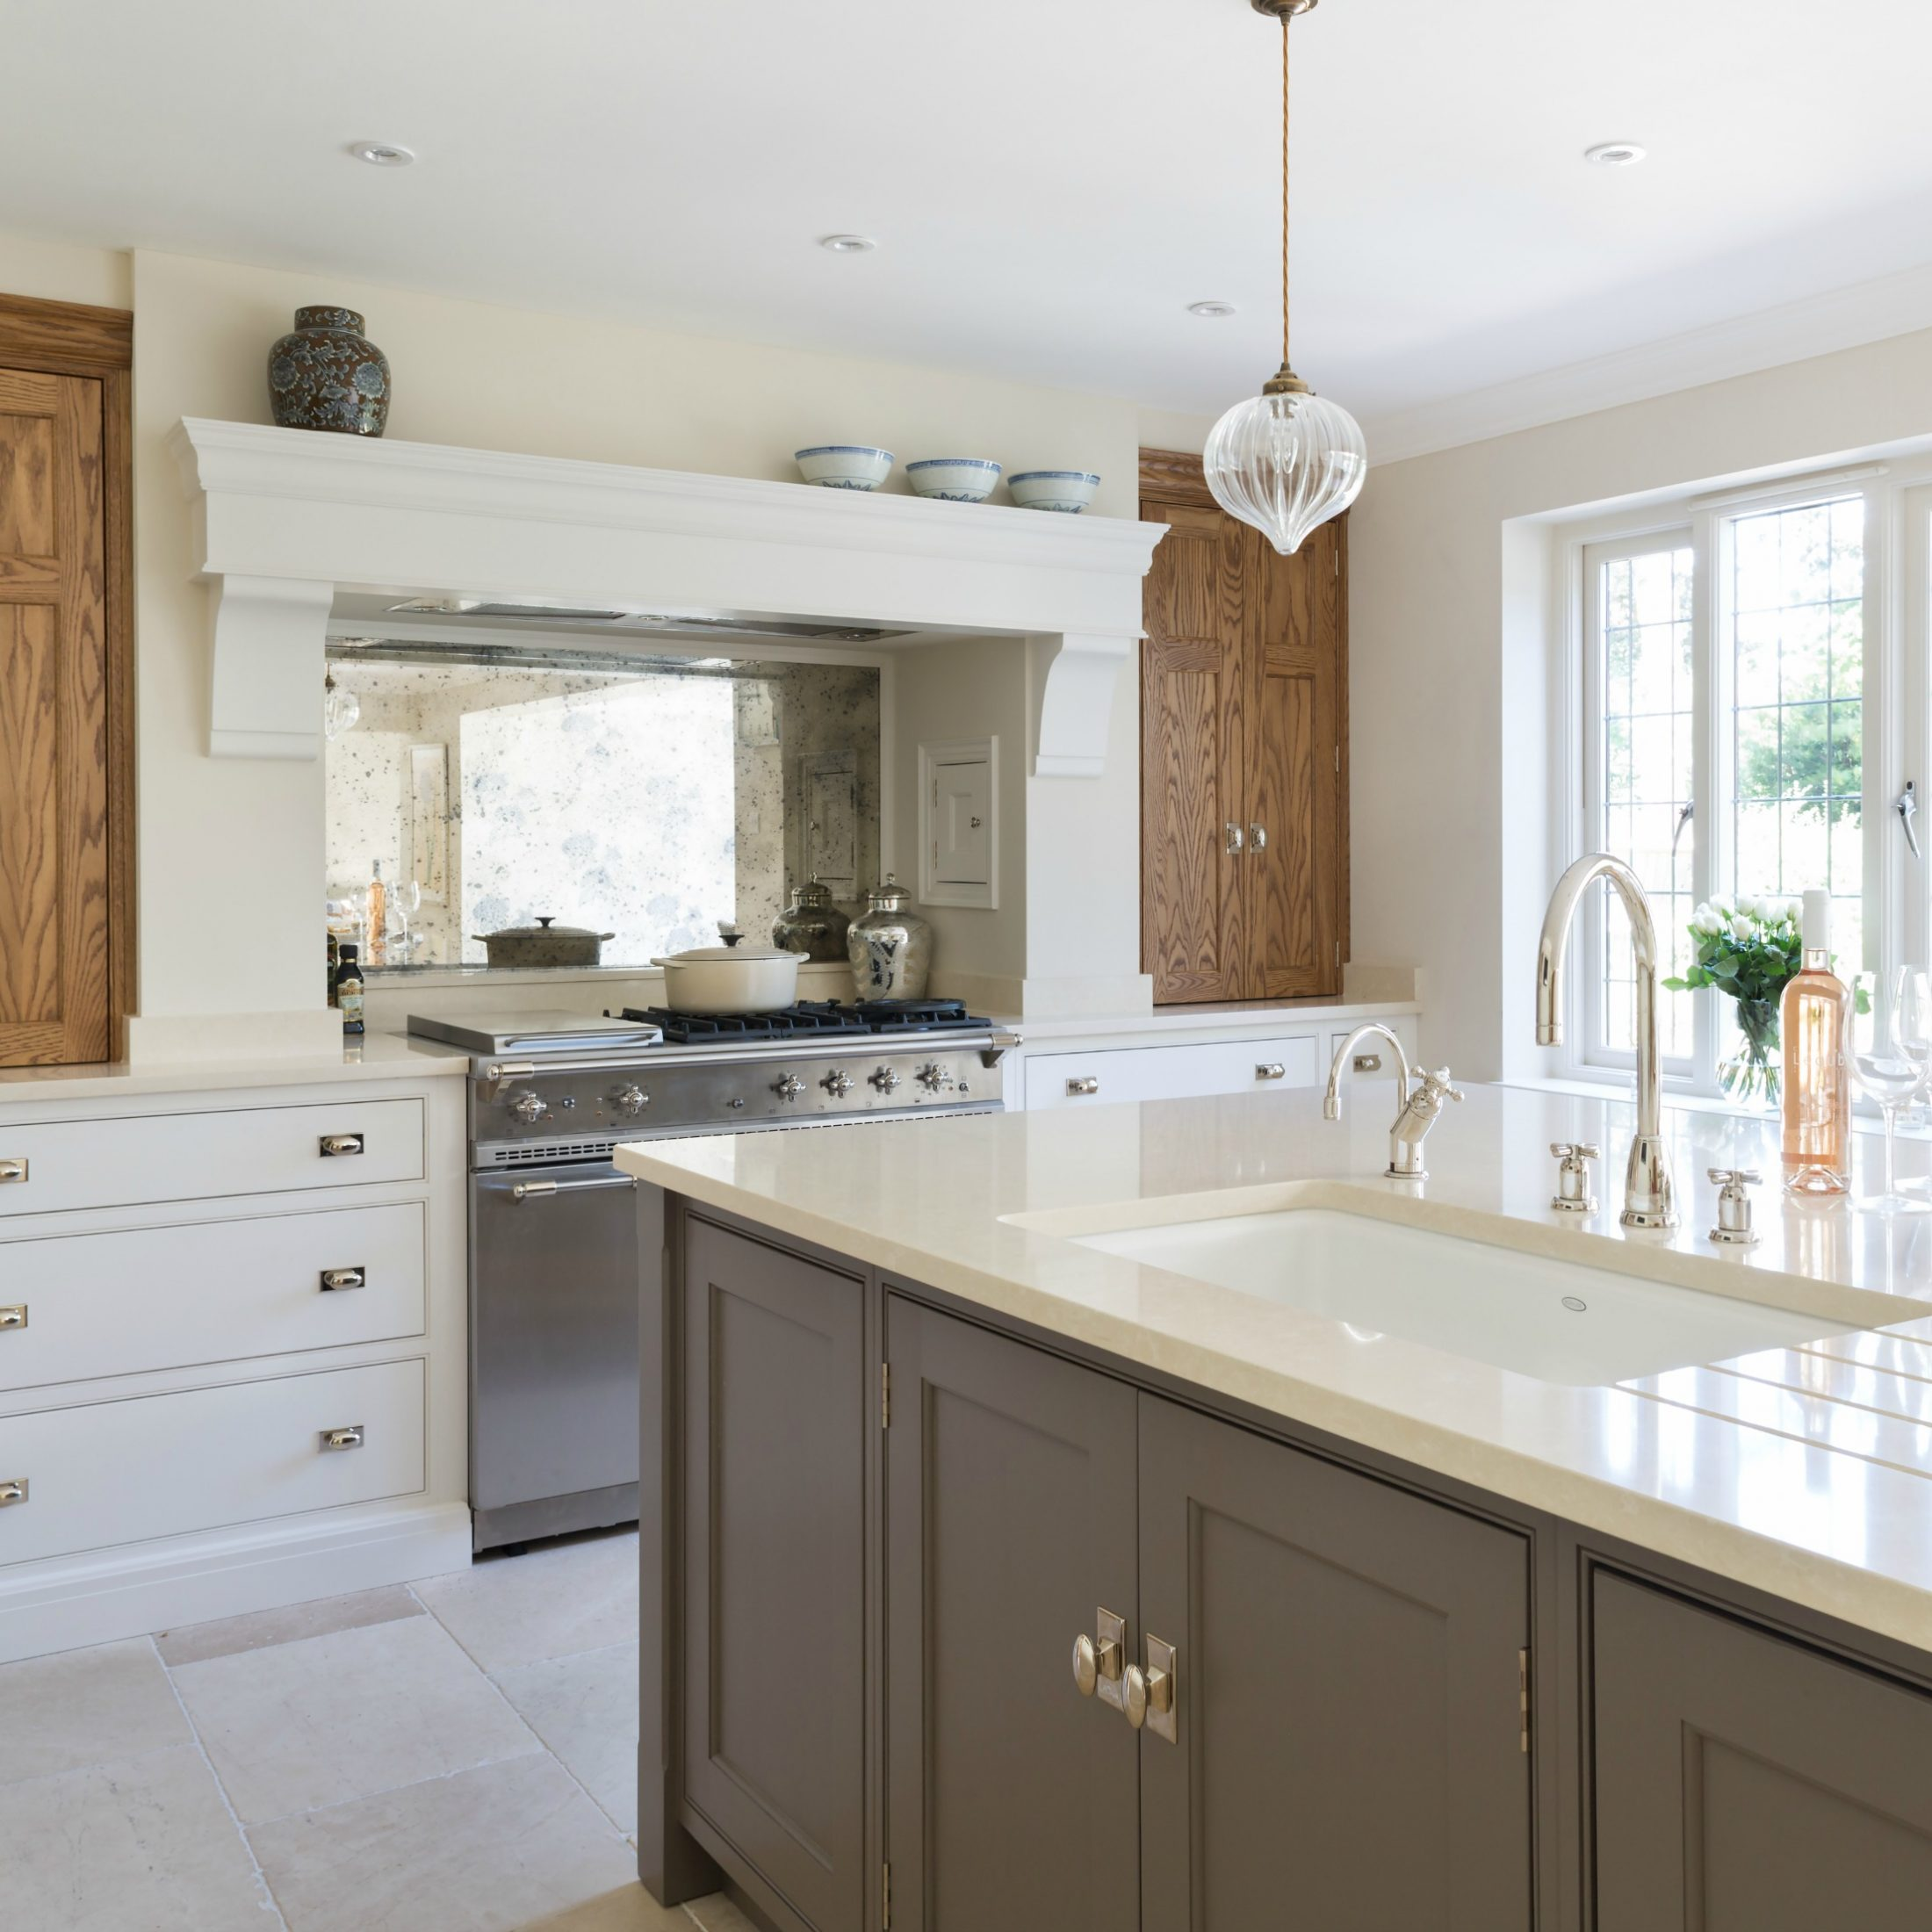 Luxury Bespoke Kitchen, Hadley Wood